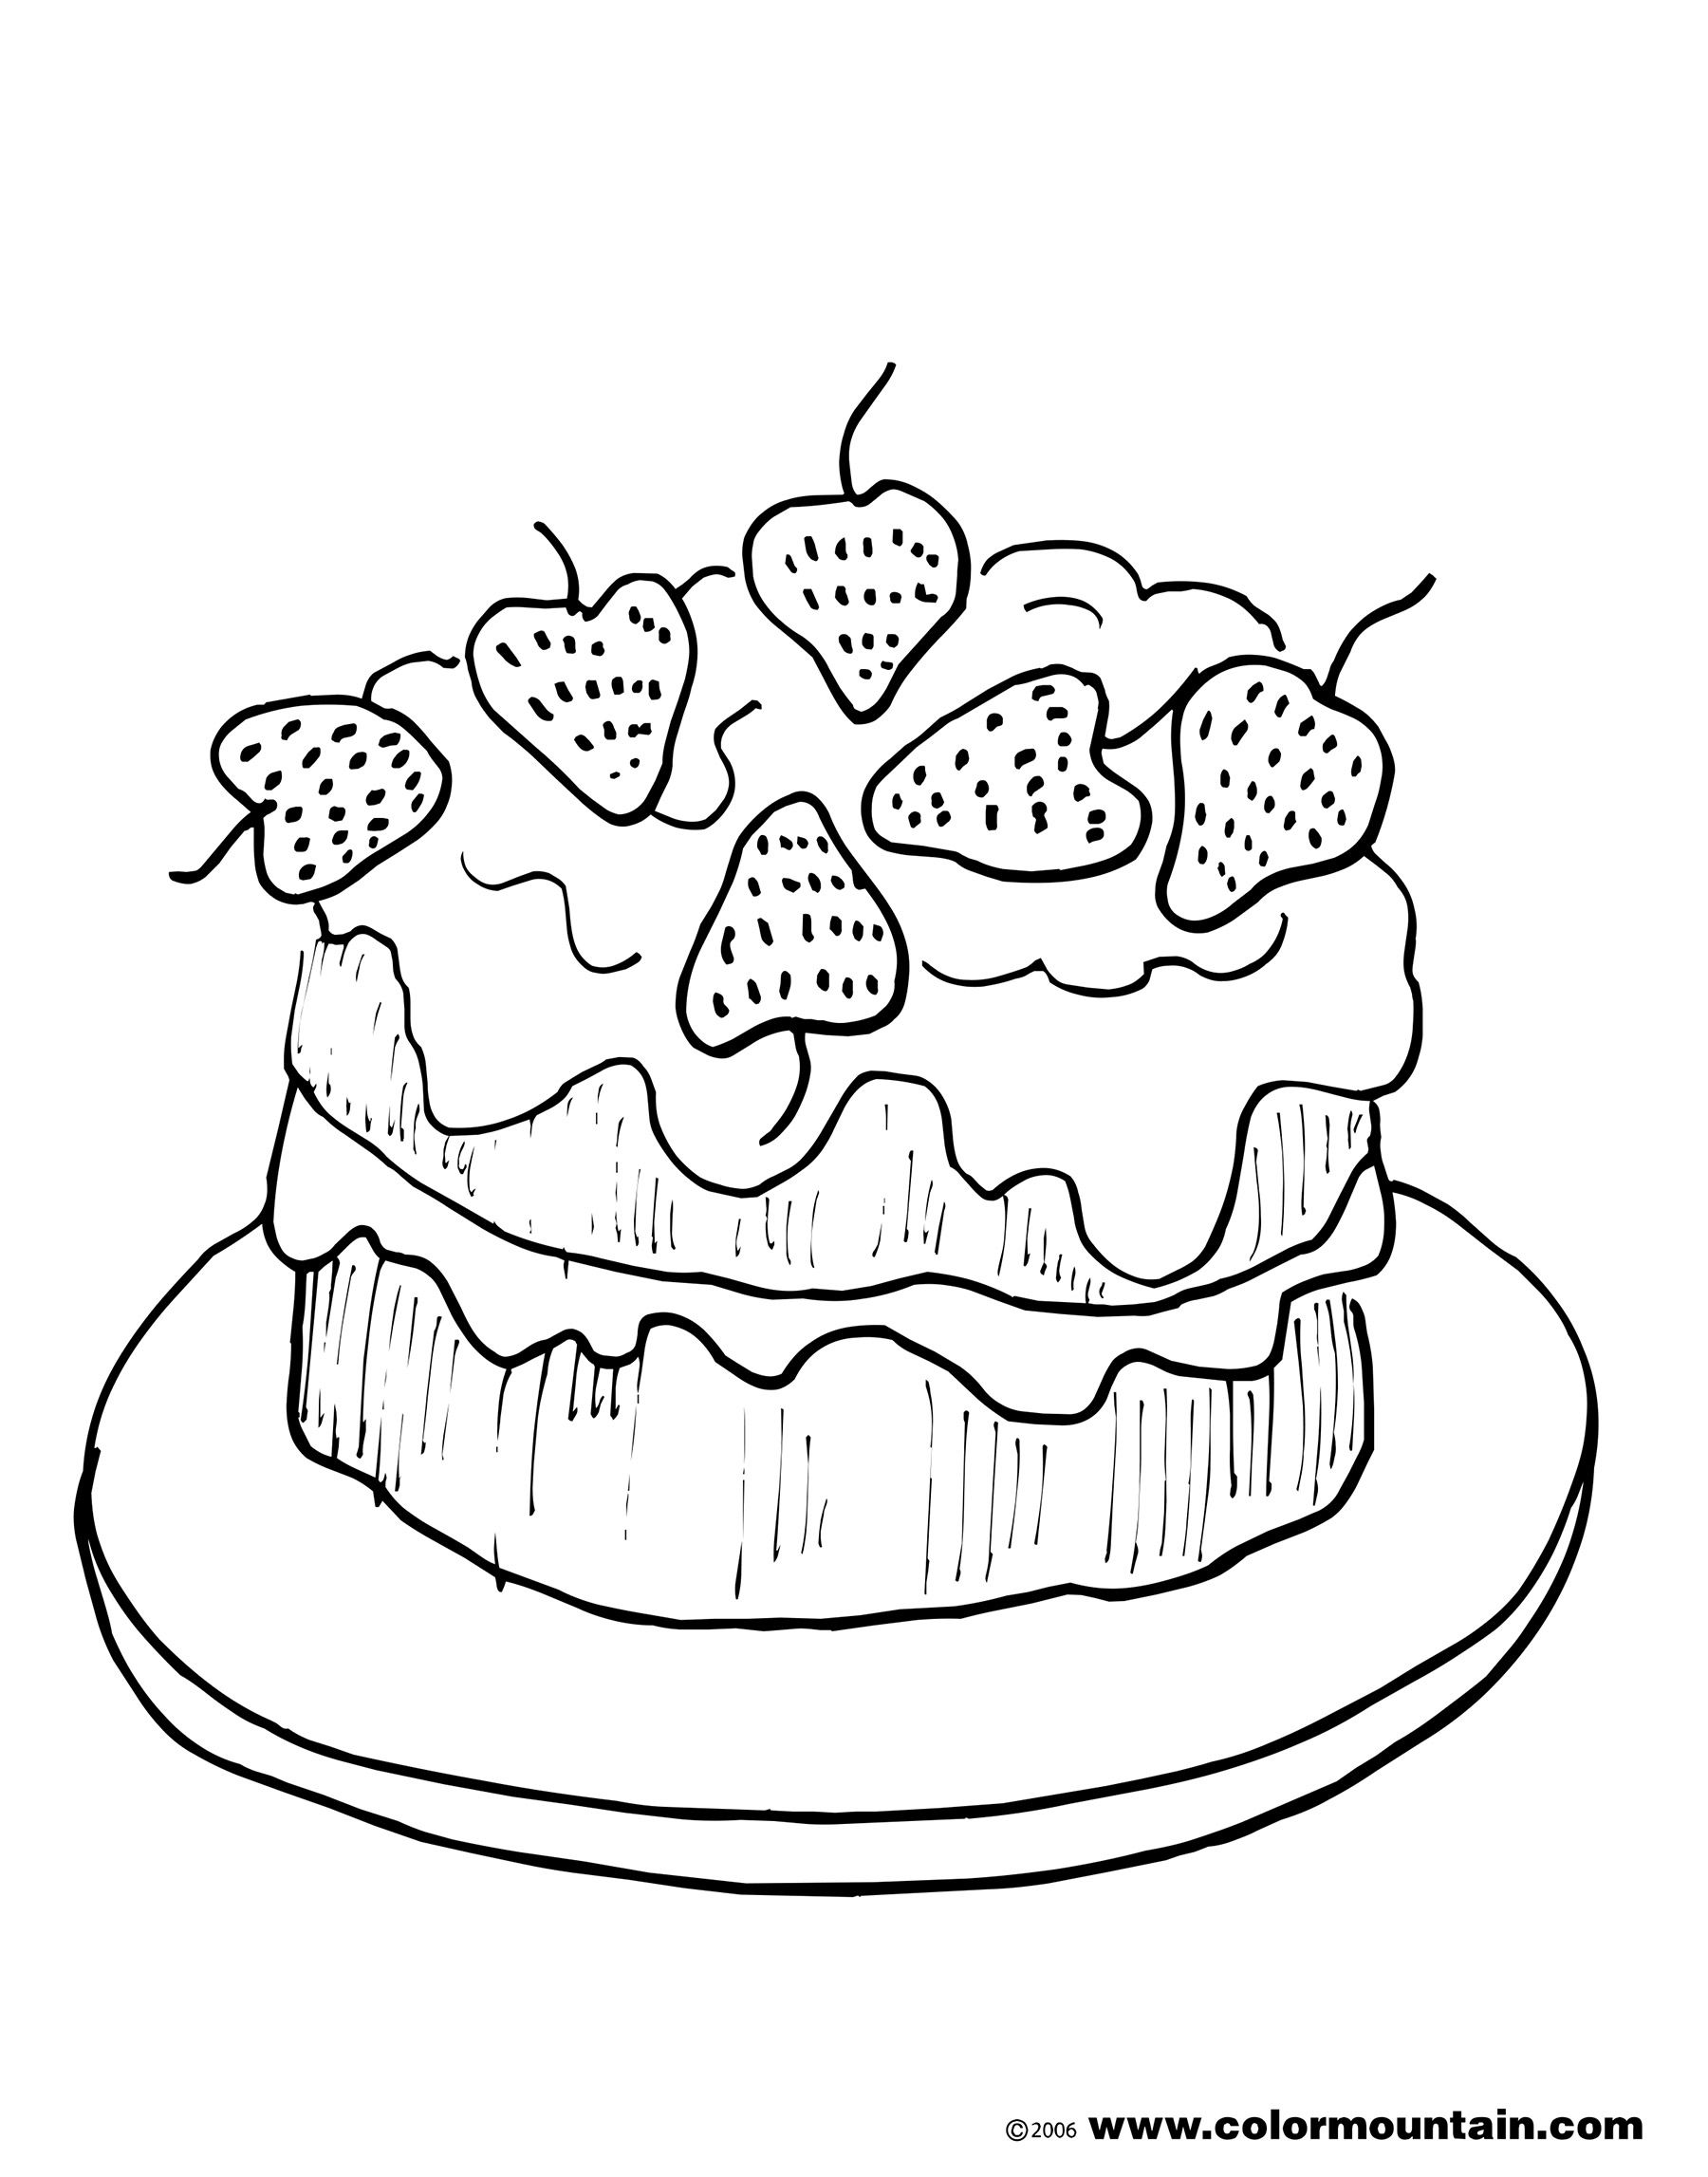 strawberry cake coloring picture - Cake Coloring Pages